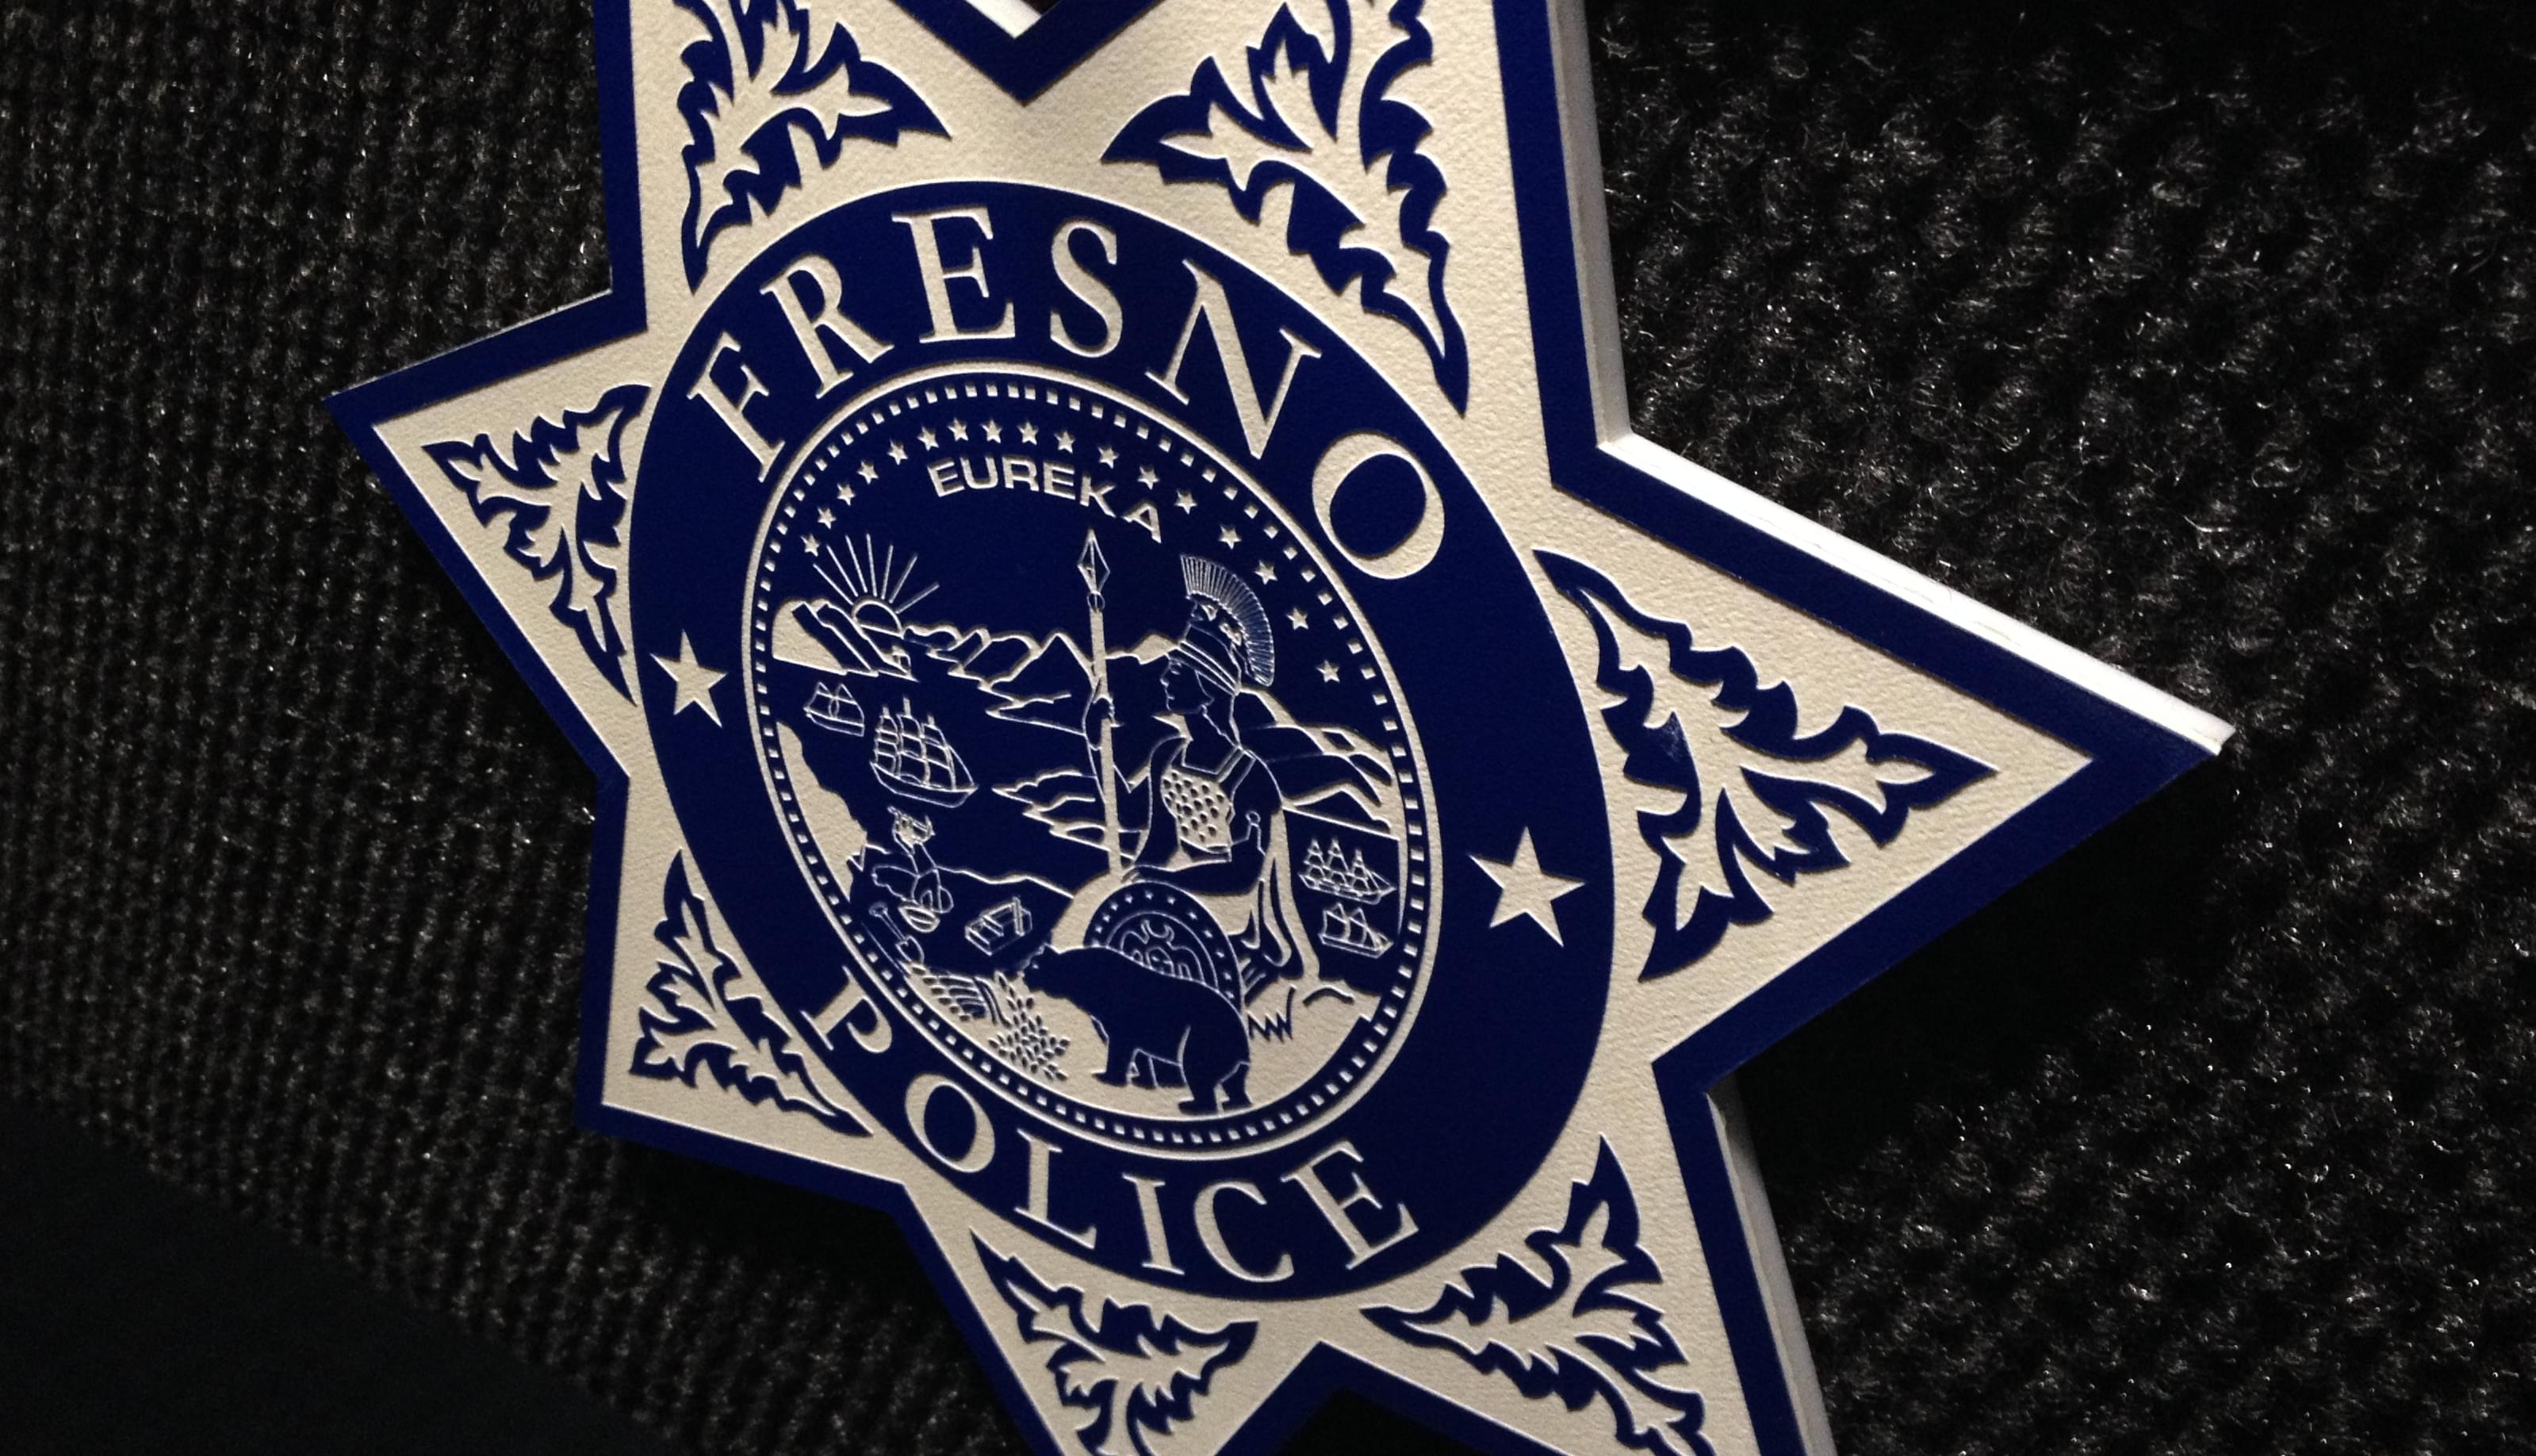 Your Opinion Wanted In Search For New Fresno Police Chief